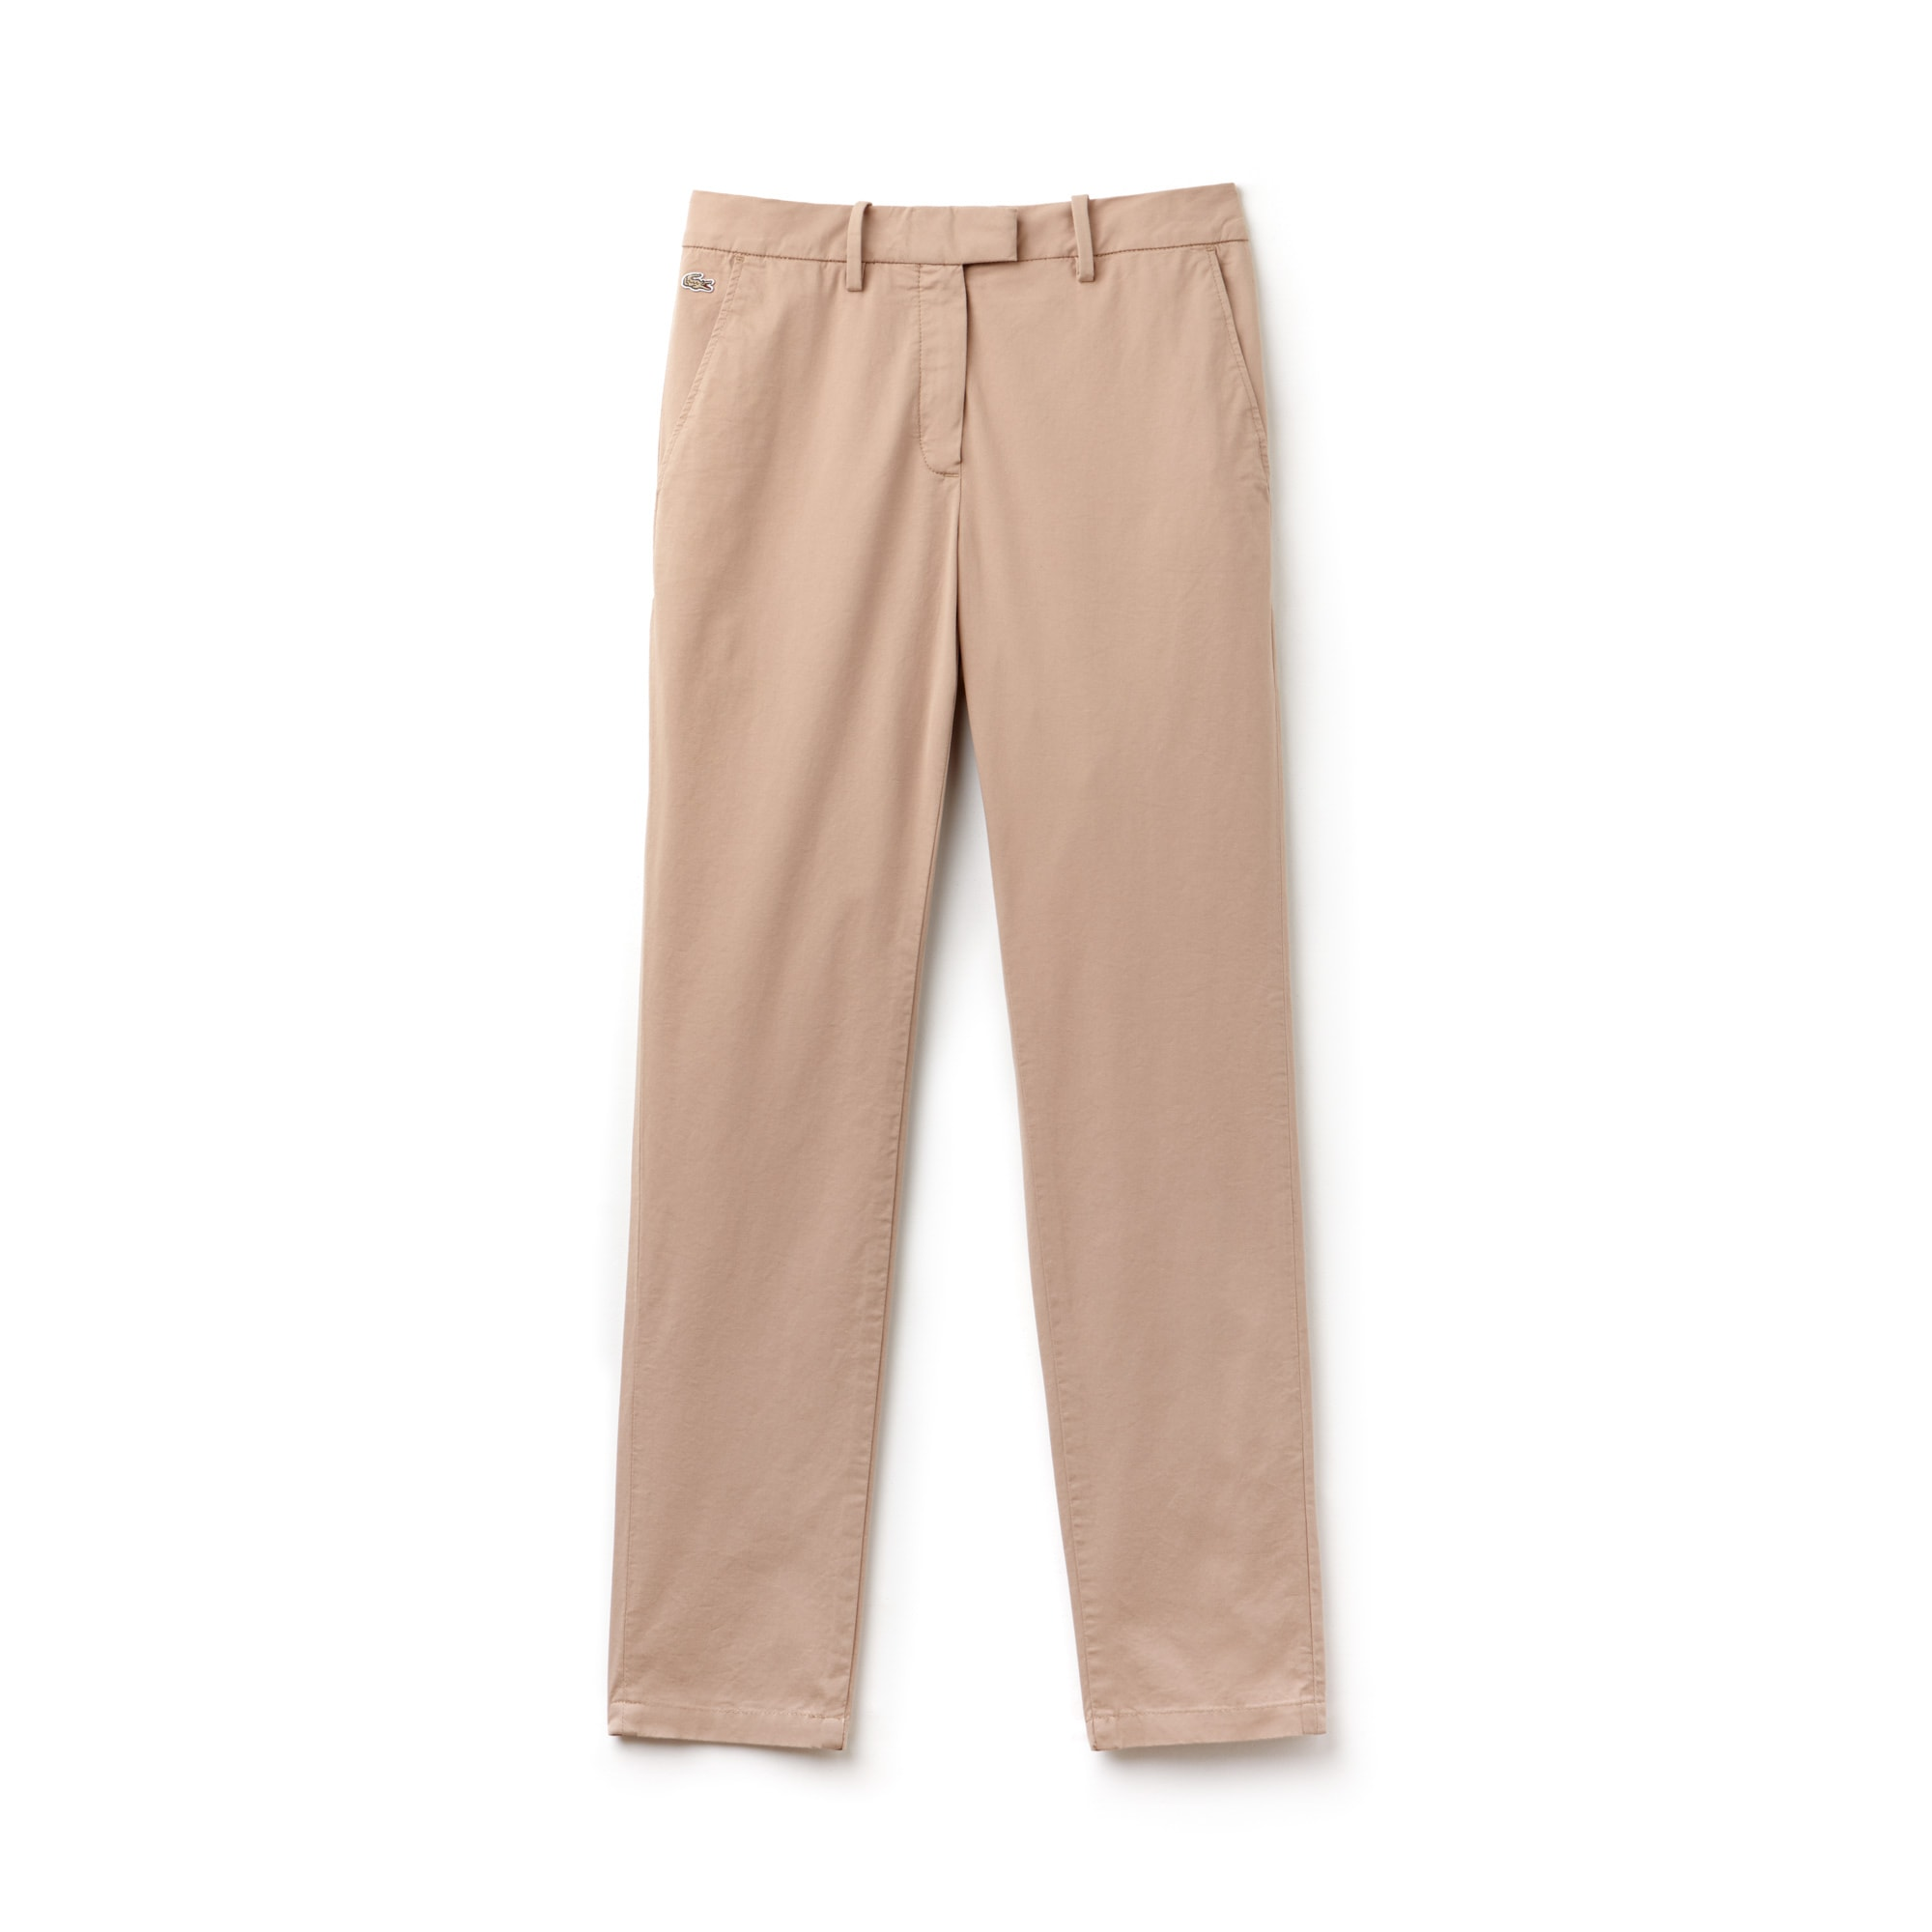 Regular Fit Damen-Chinohose aus Stretch-Gabardine mit Faltenlegung